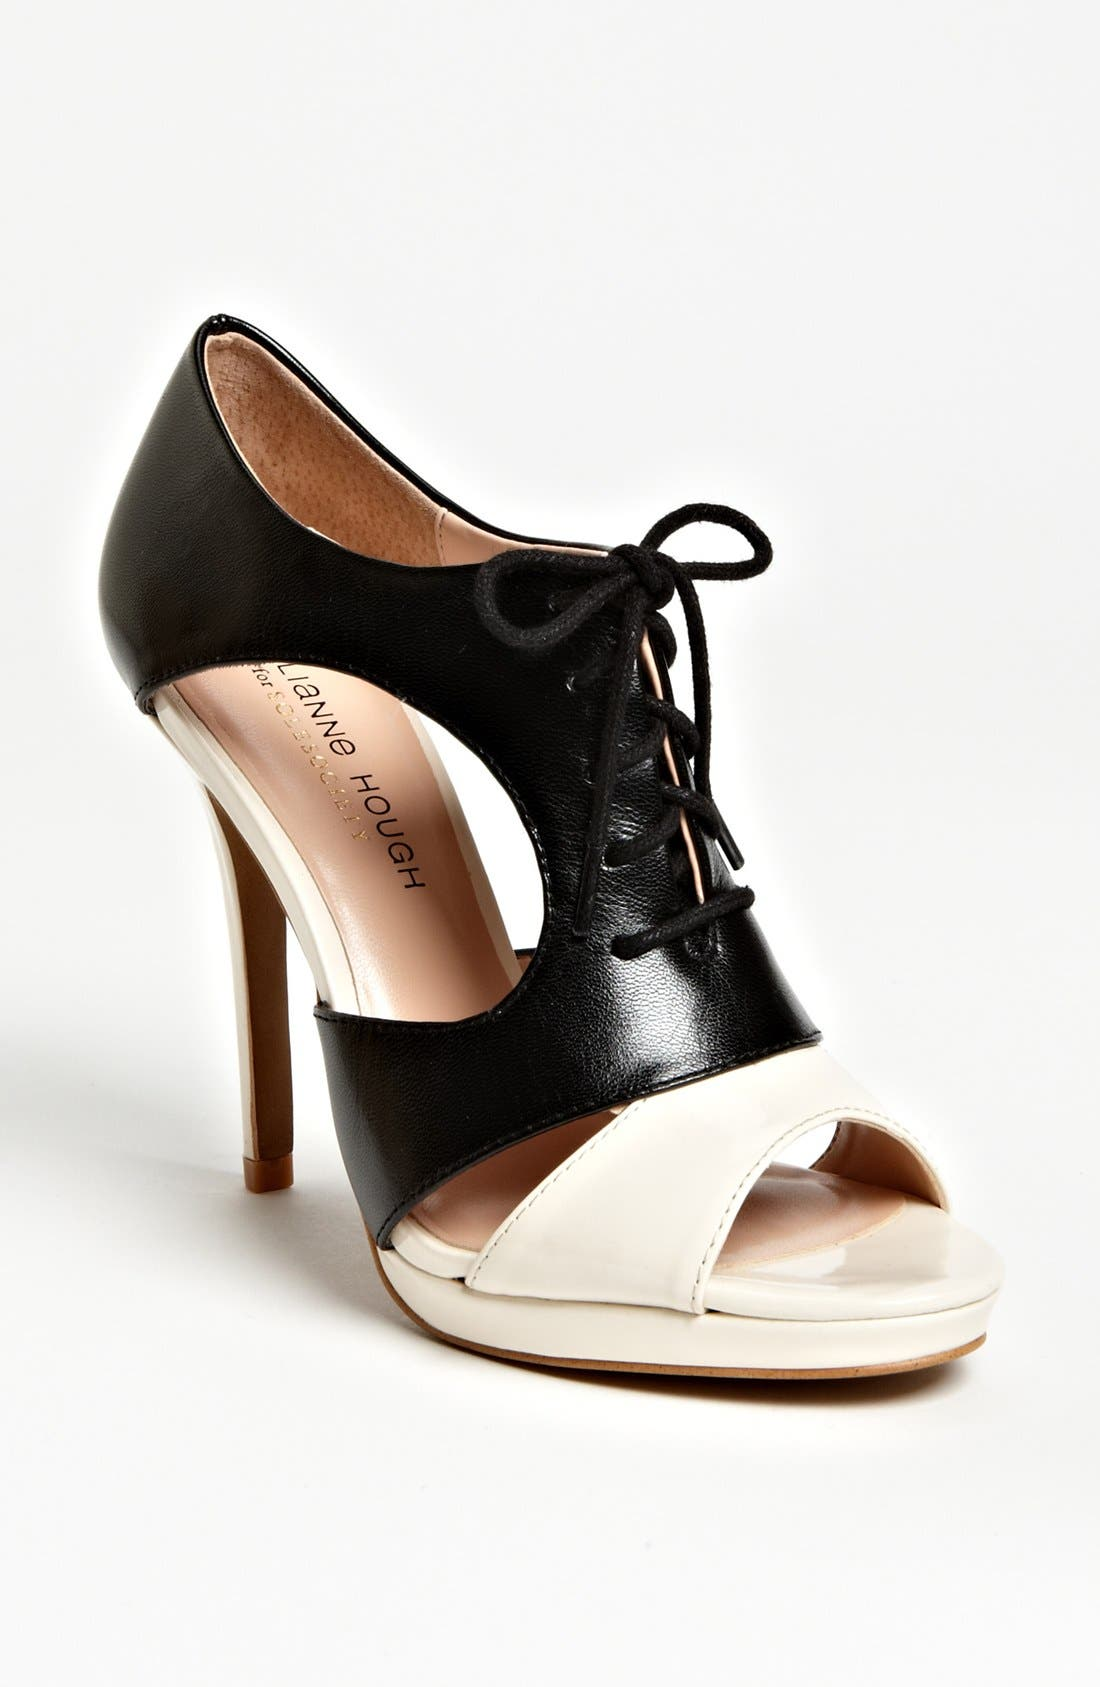 Main Image - Julianne Hough for Sole Society 'Danette' Bootie